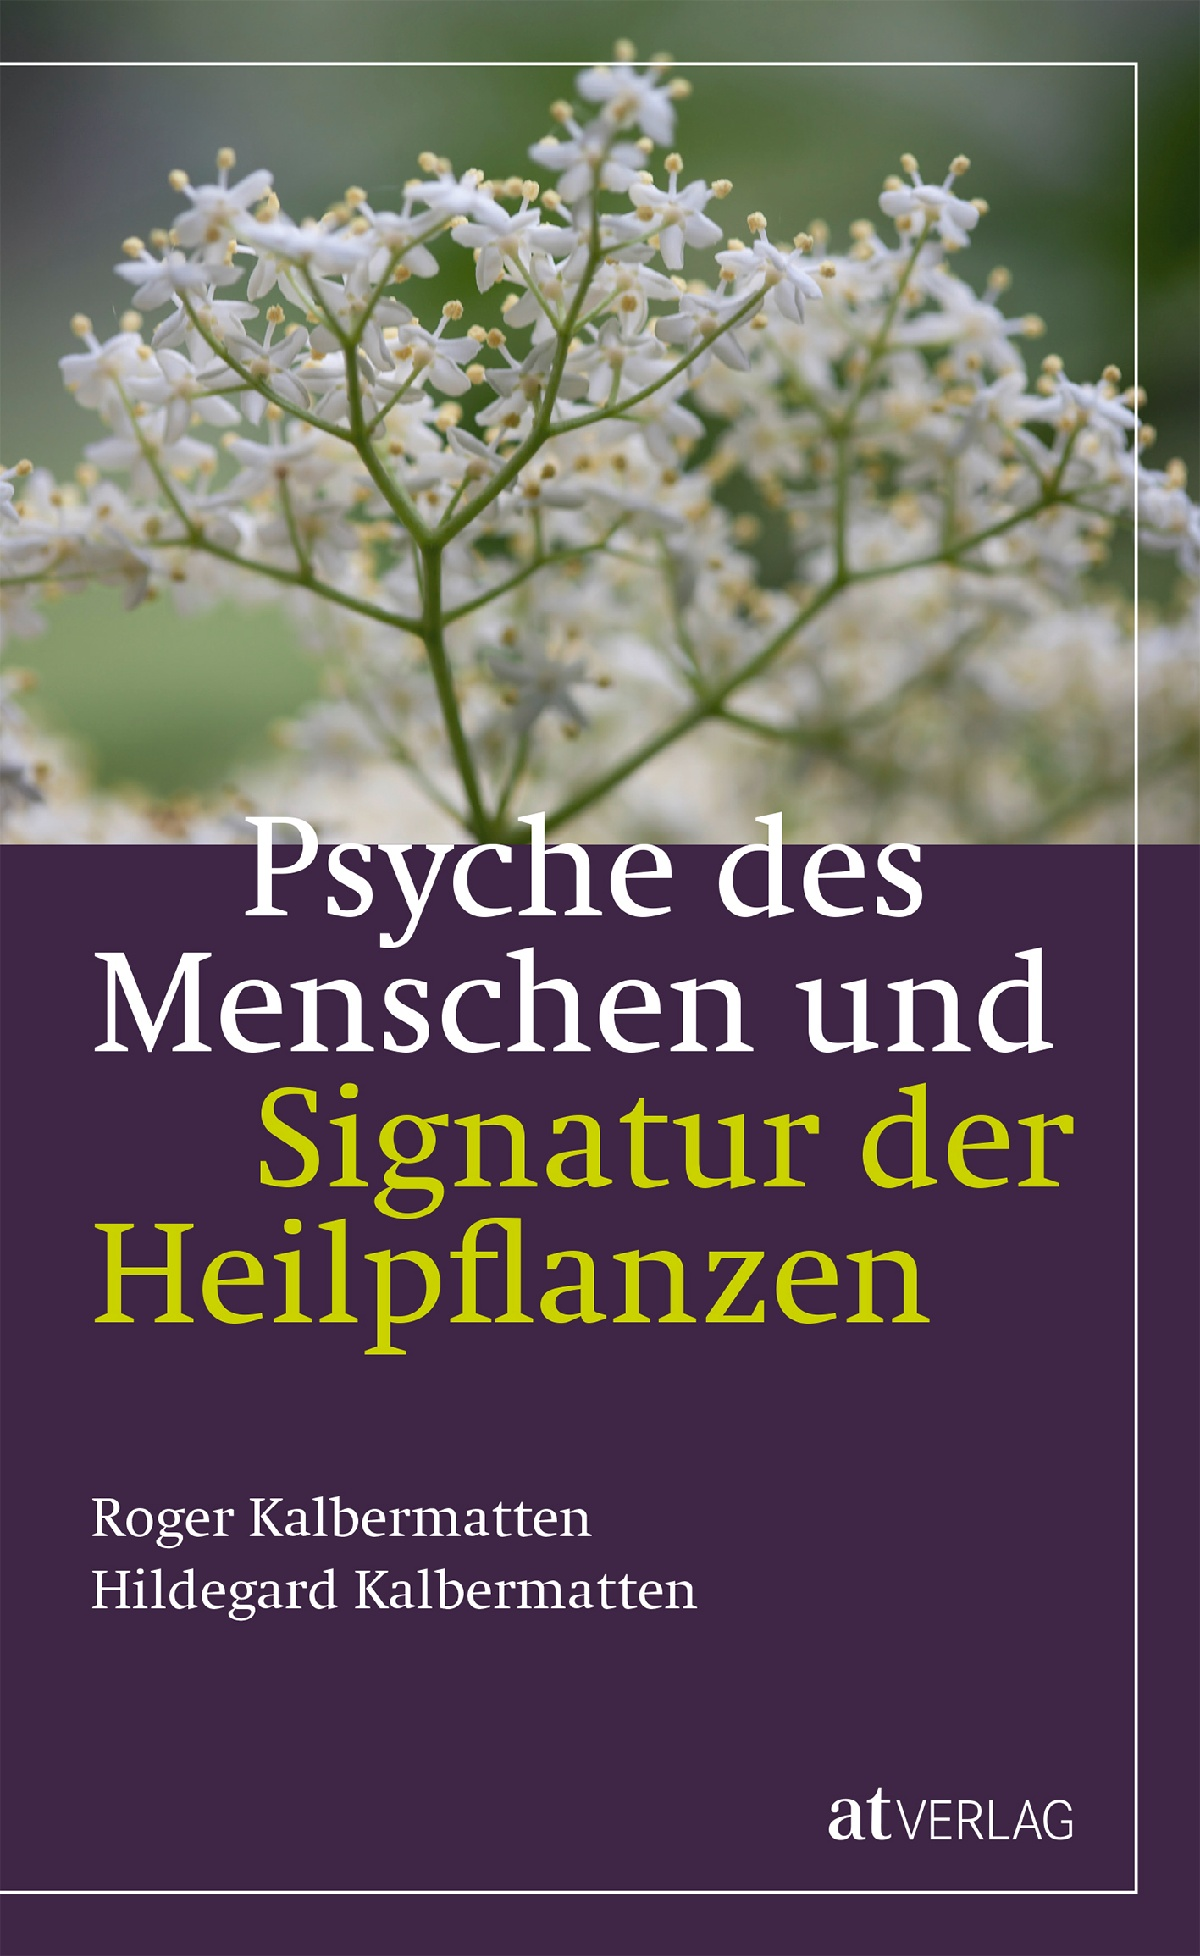 Human Psyche and Healing Plant Signature